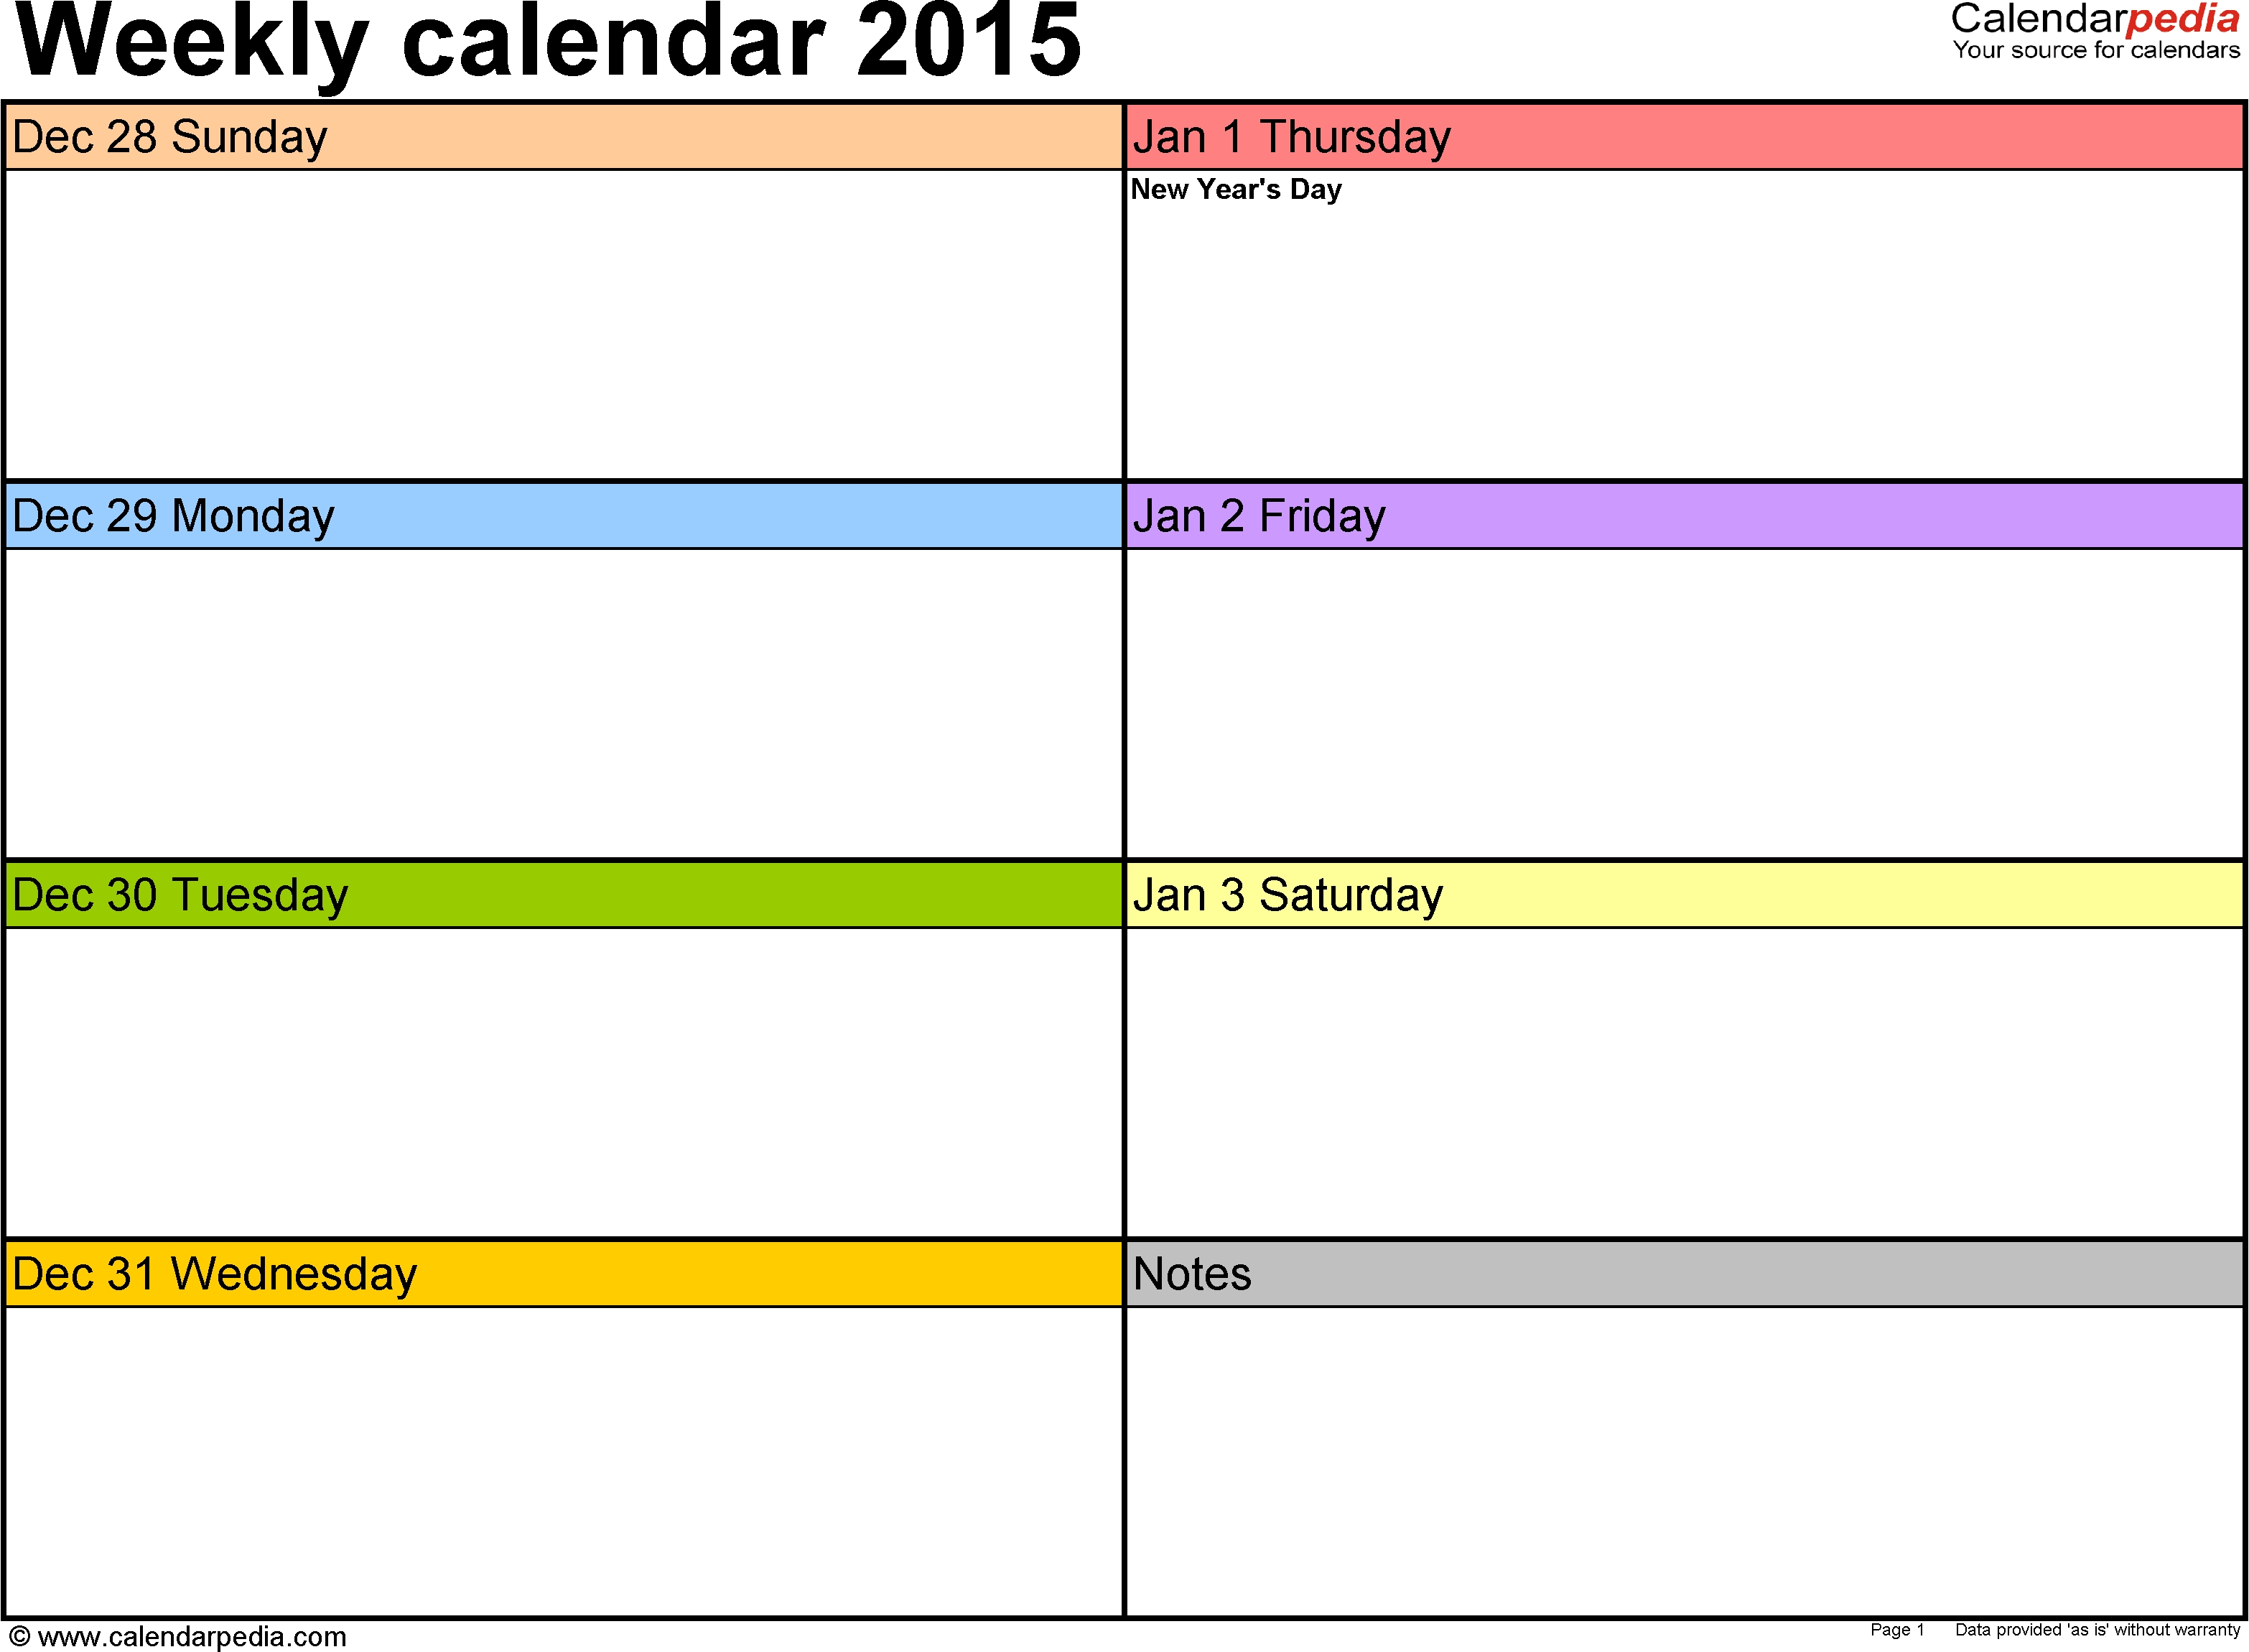 Weekly Calendars 2015 For Excel - 12 Free Printable Templates